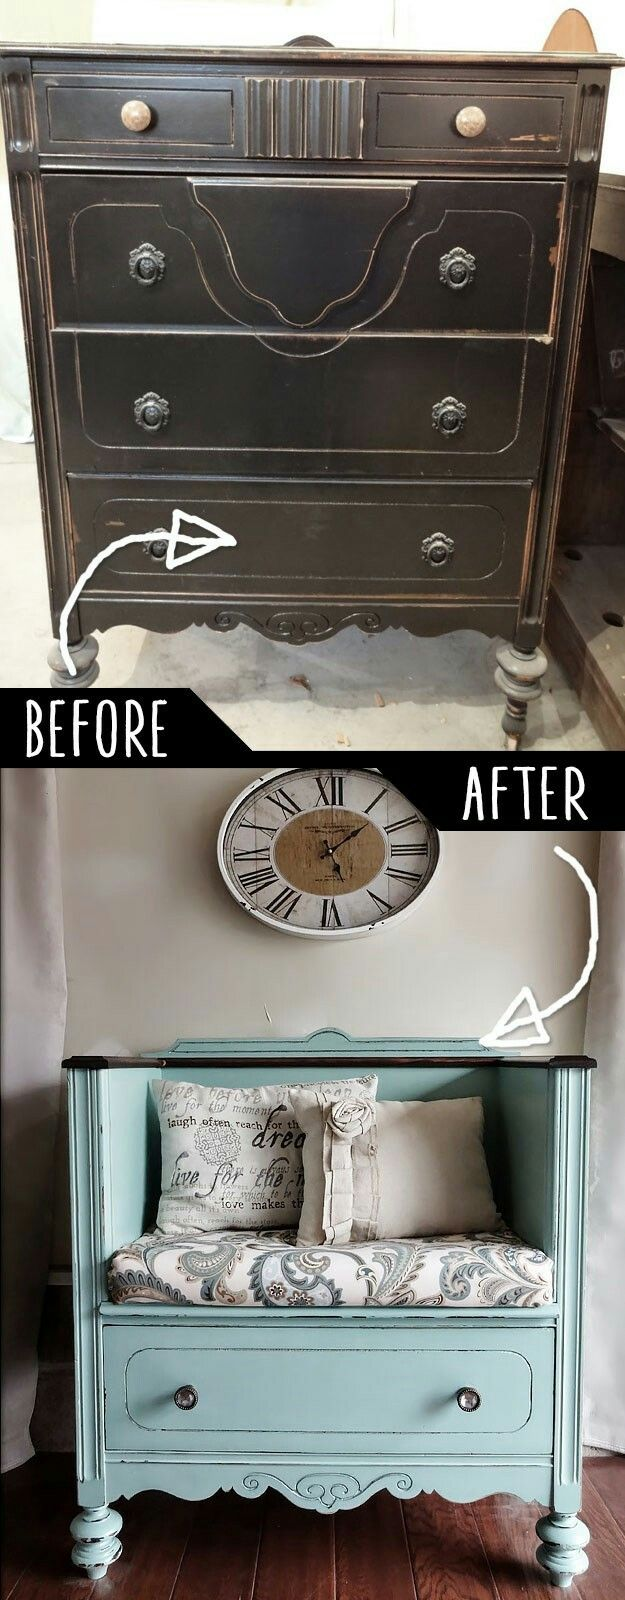 Renew a mobile in a shabby chic style video 20 ideas retaper un vieux meuble shabby chic 8 solutioingenieria Image collections